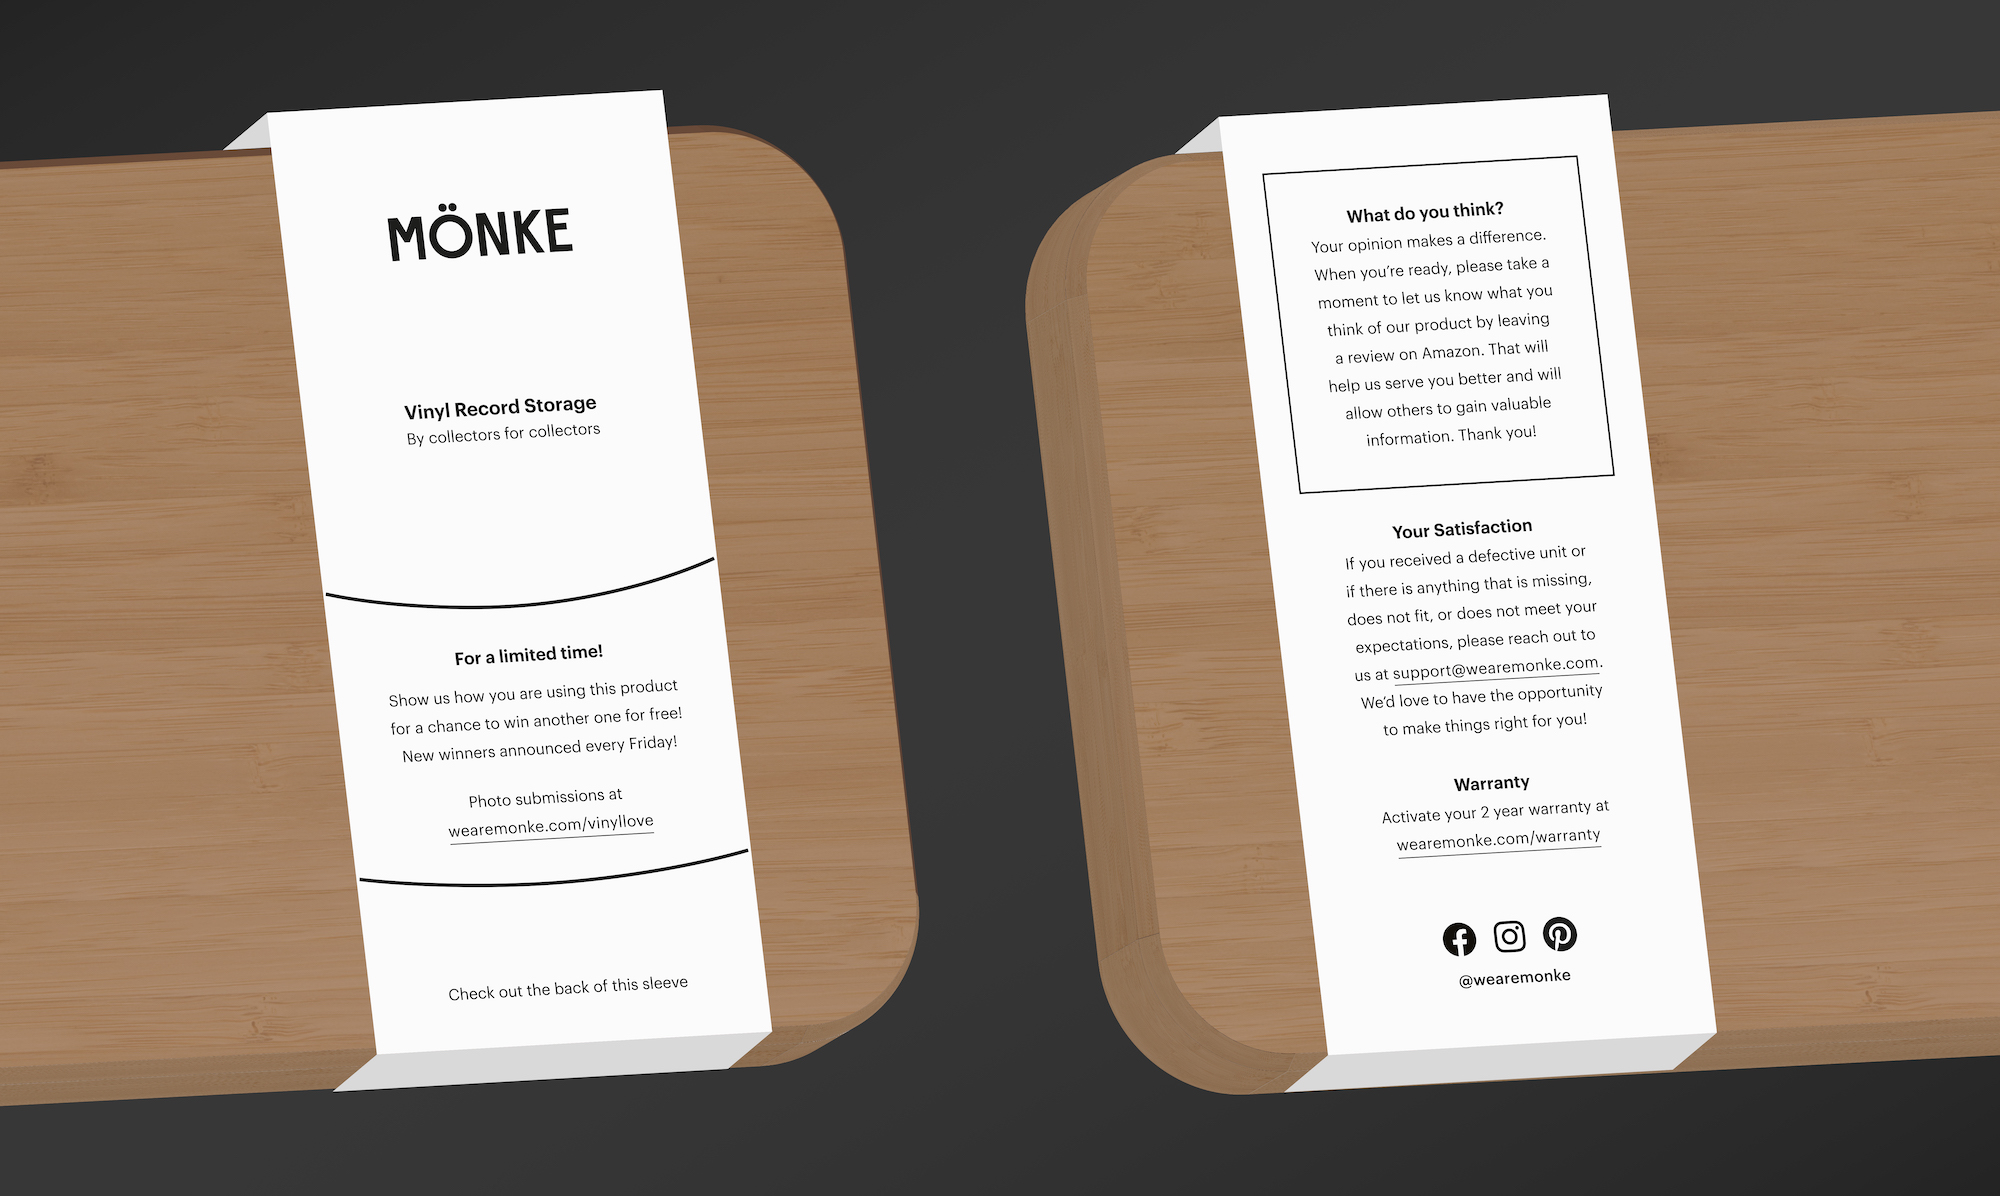 monke-packaging-sleeve-mockup